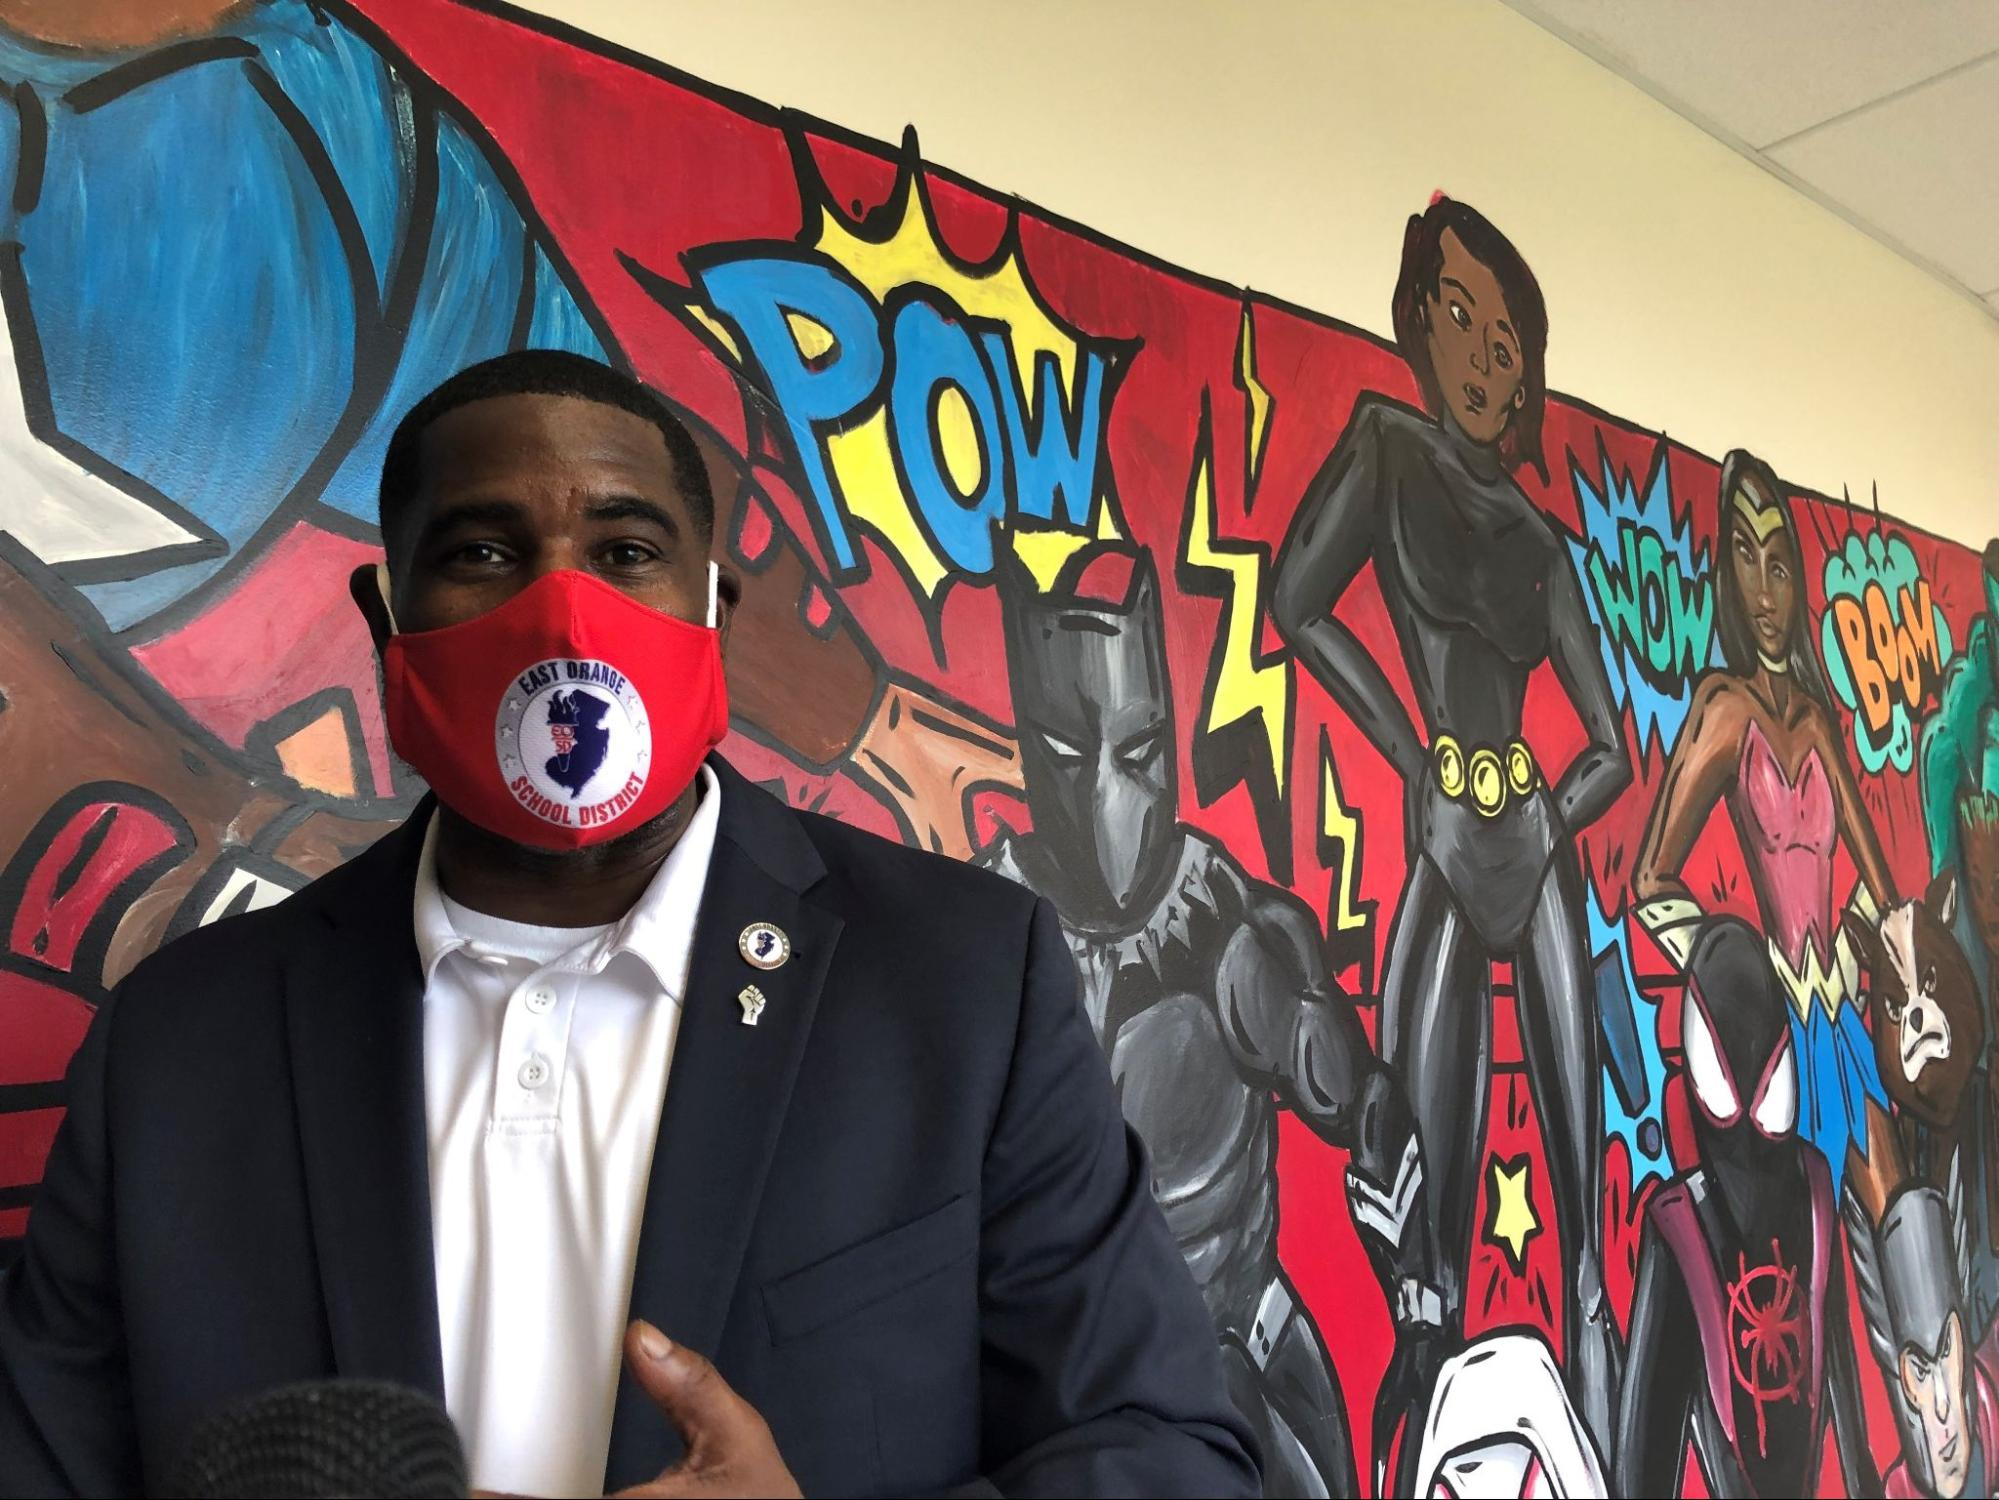 Photograph of East Orange Superintendent AbdulSaleem Hasan wearing a mask in front of a colorful mural